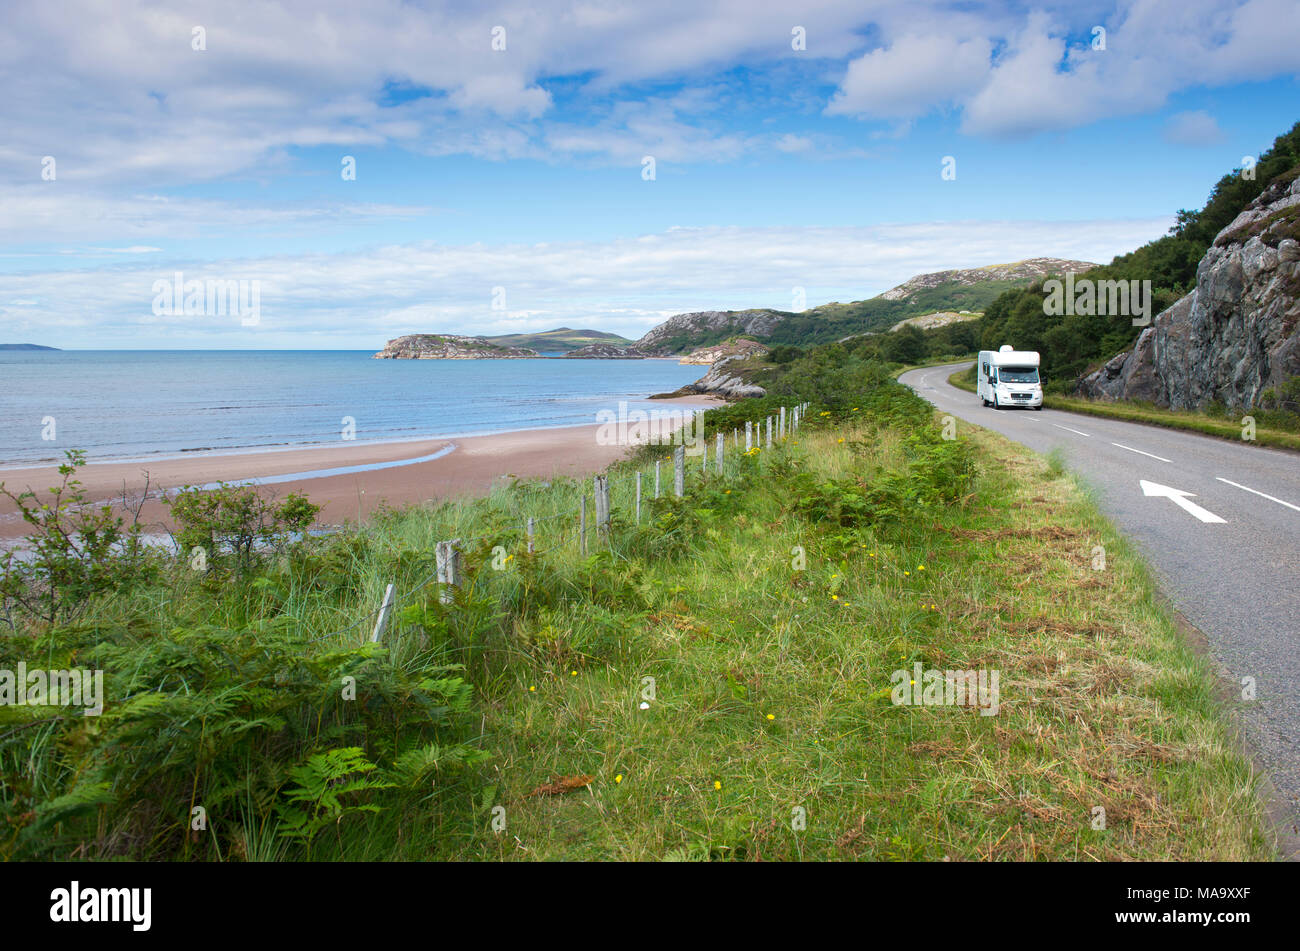 Camper van driving along the North Coast 500 scenic route in Wester Ross, Scotland - Stock Image